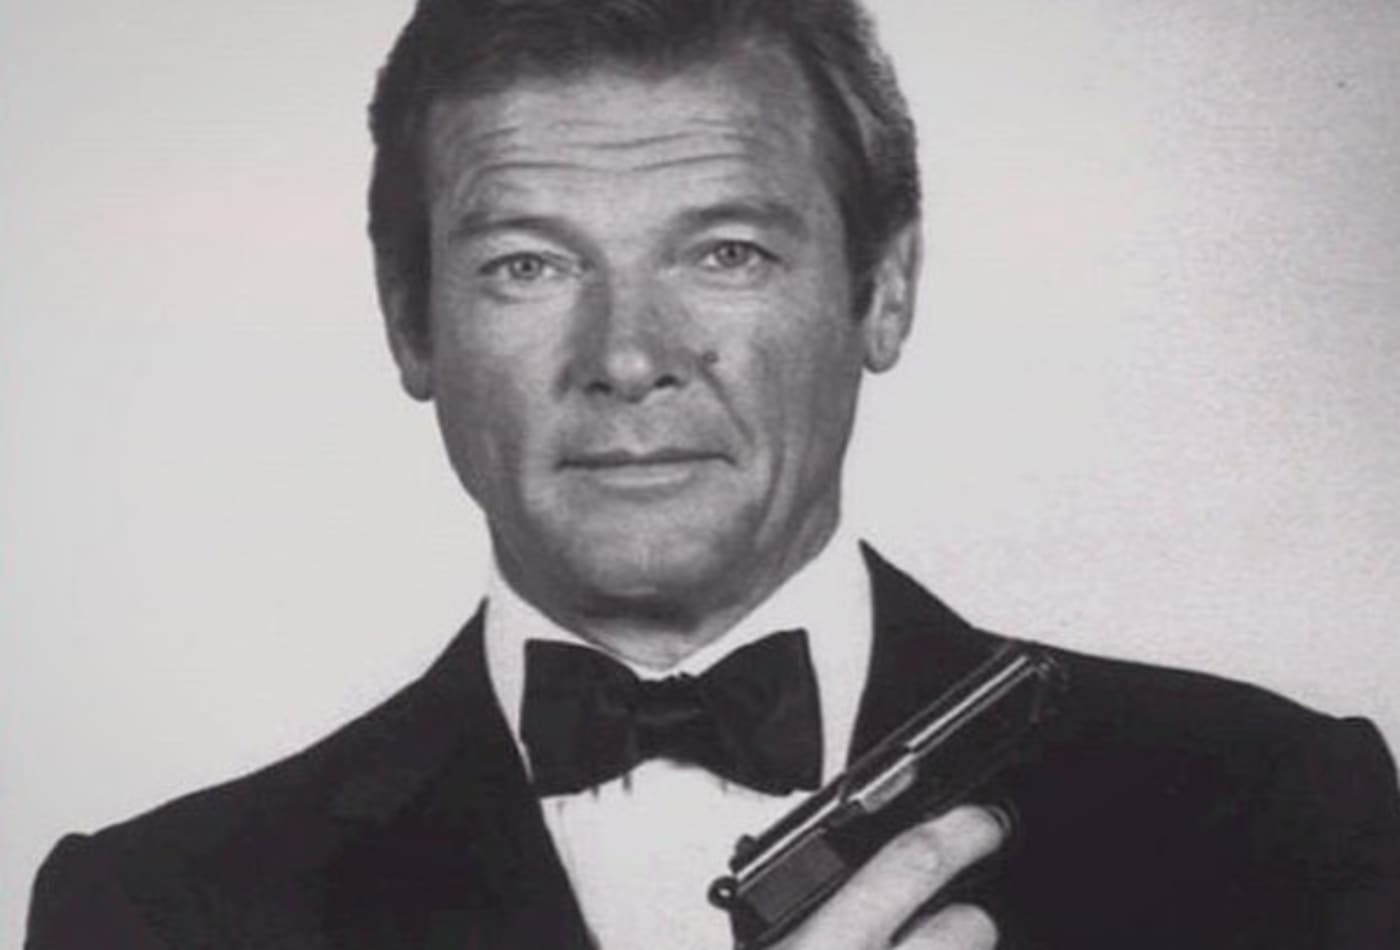 James-Bond-Collectibles-walther-ppk.jpg